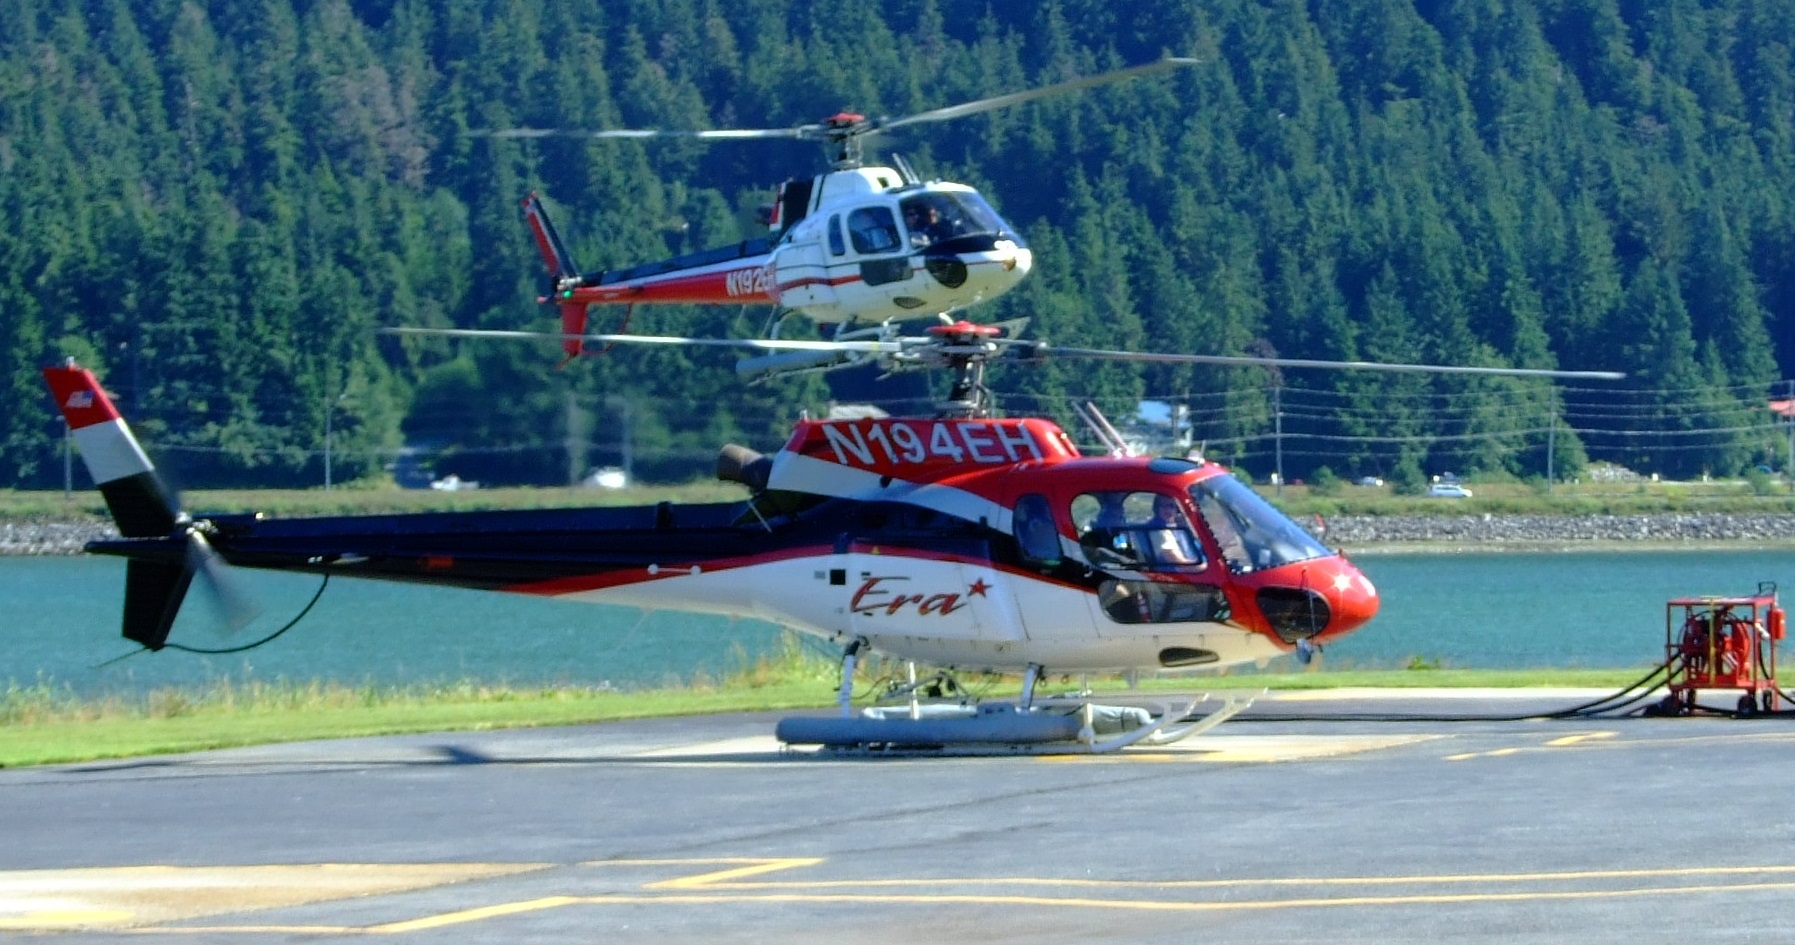 """The helipad is perched on the edge of the Gastineau Channel at 58°19'55"""" N, 134°29'50"""" W. The weather is not always this good as you can see from the photos on Google Earth at this location."""